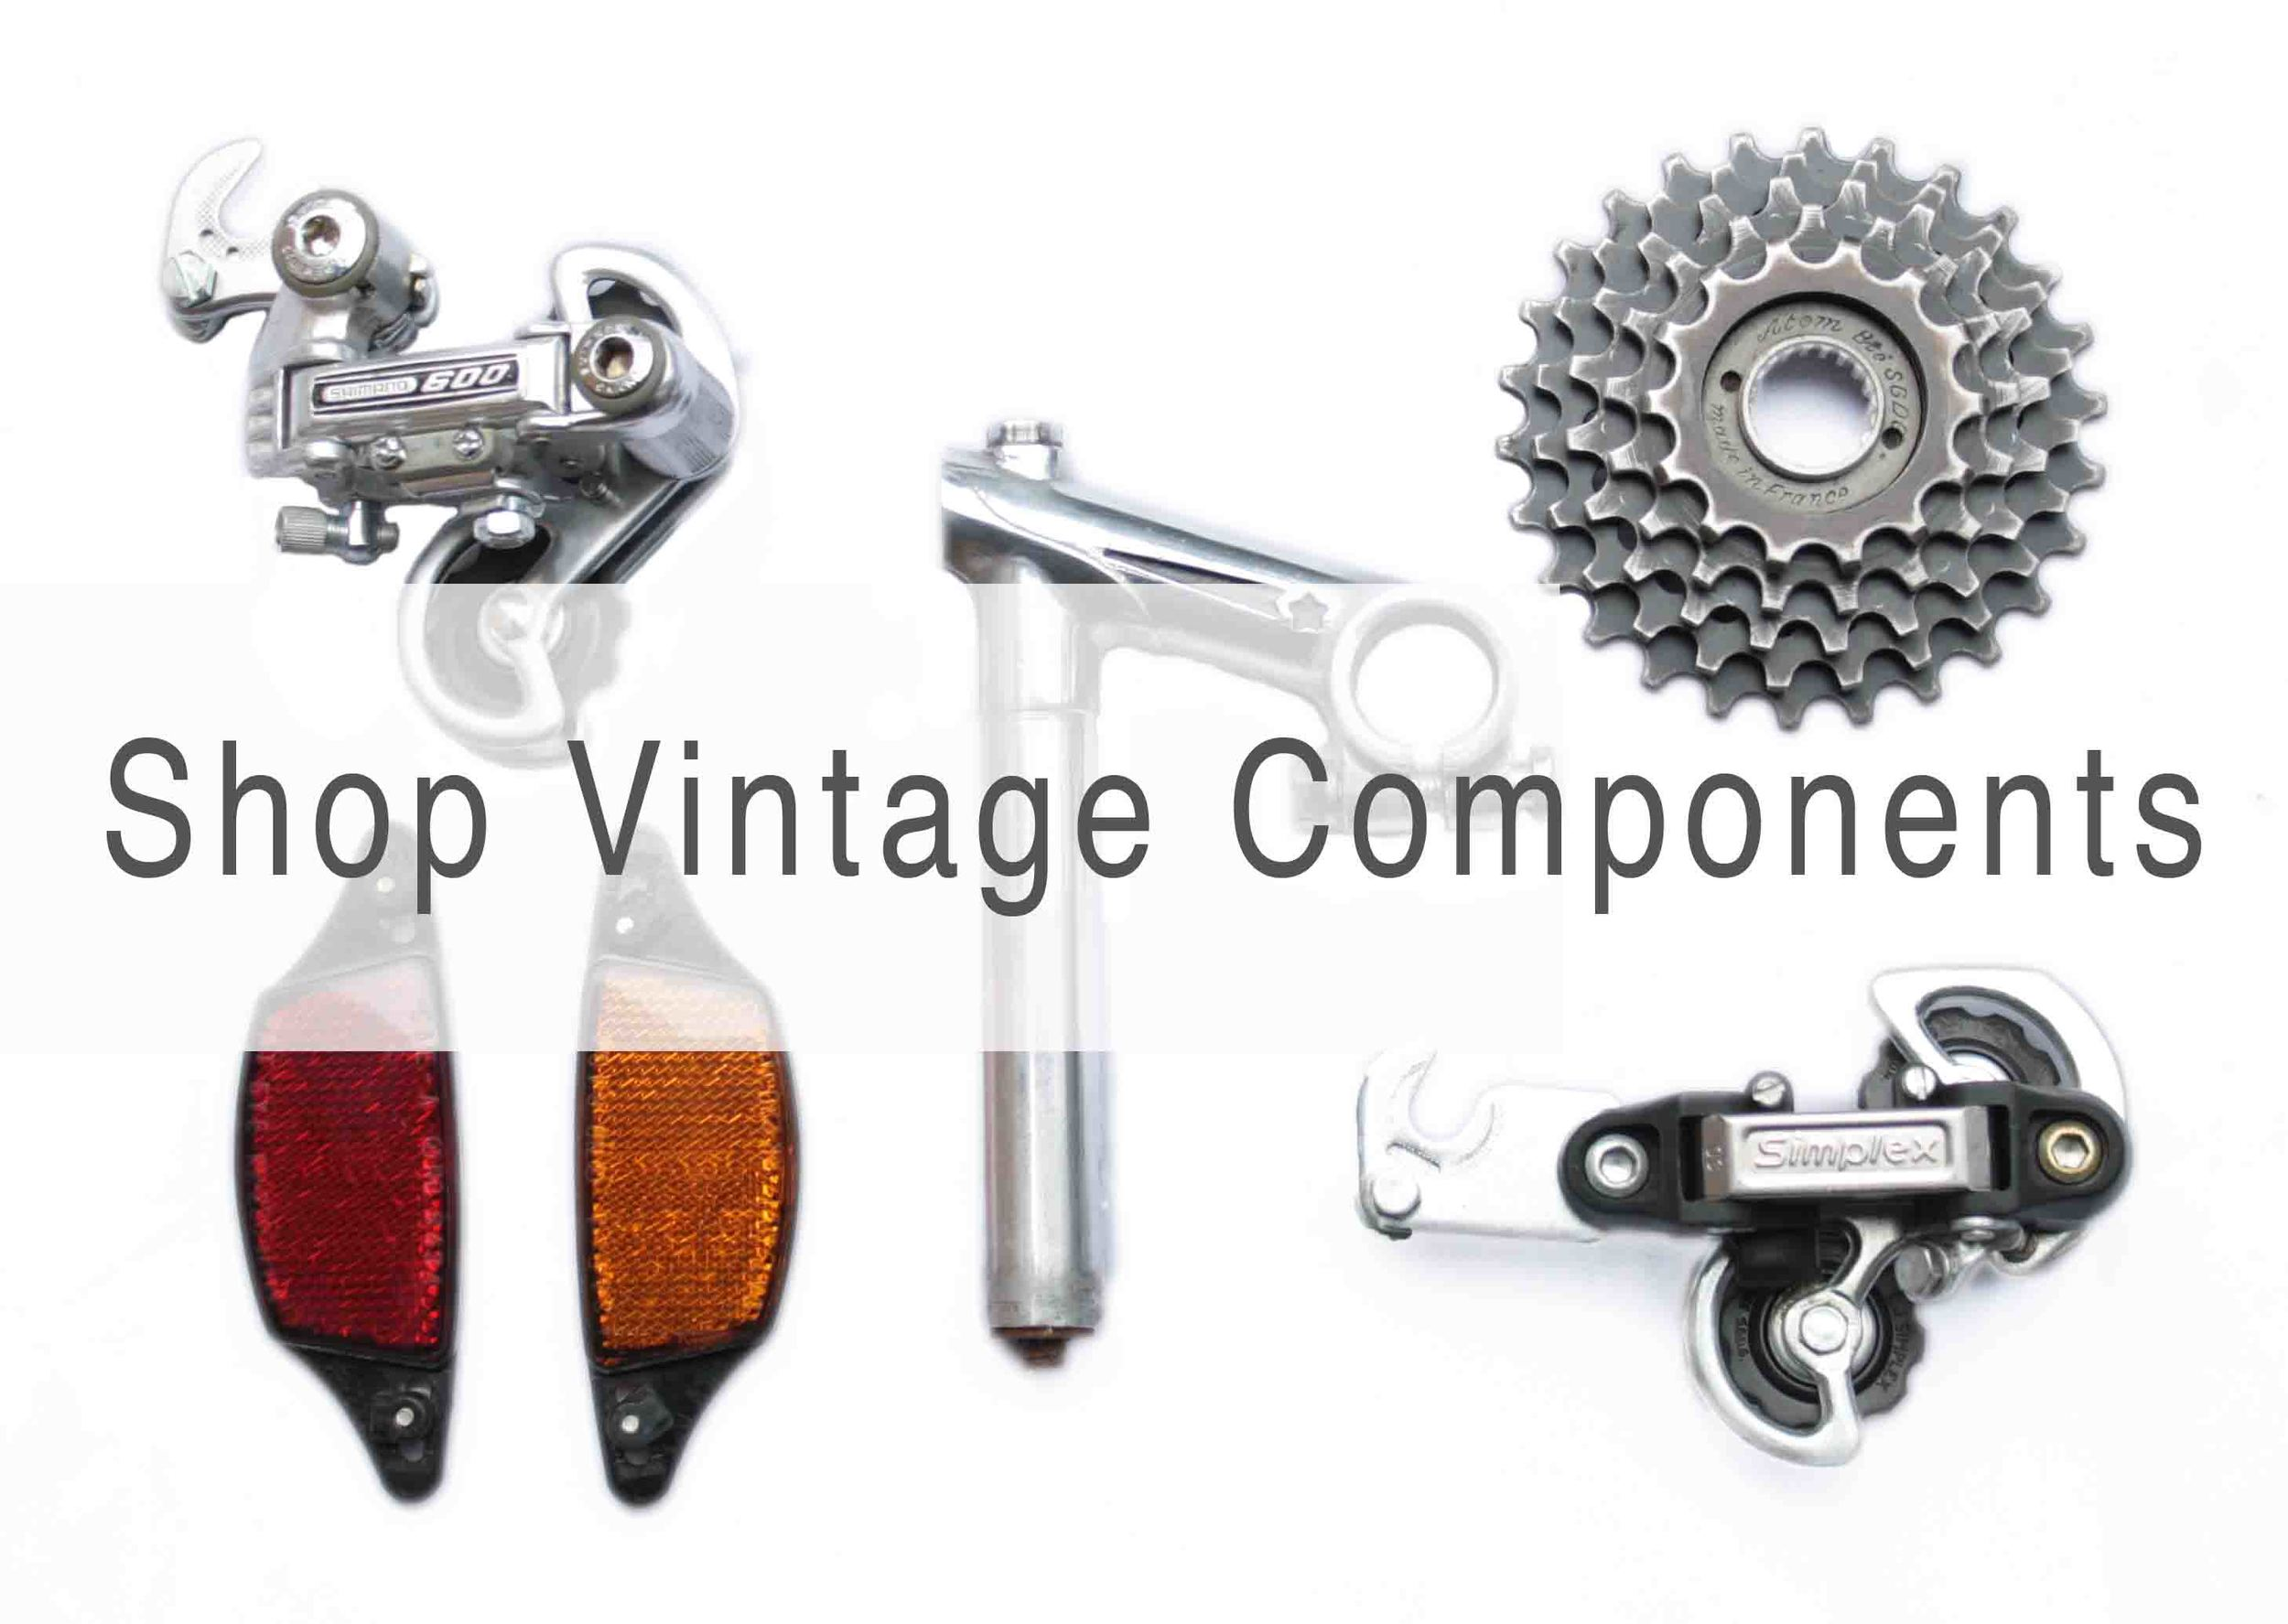 shopvintagecomponents.jpg